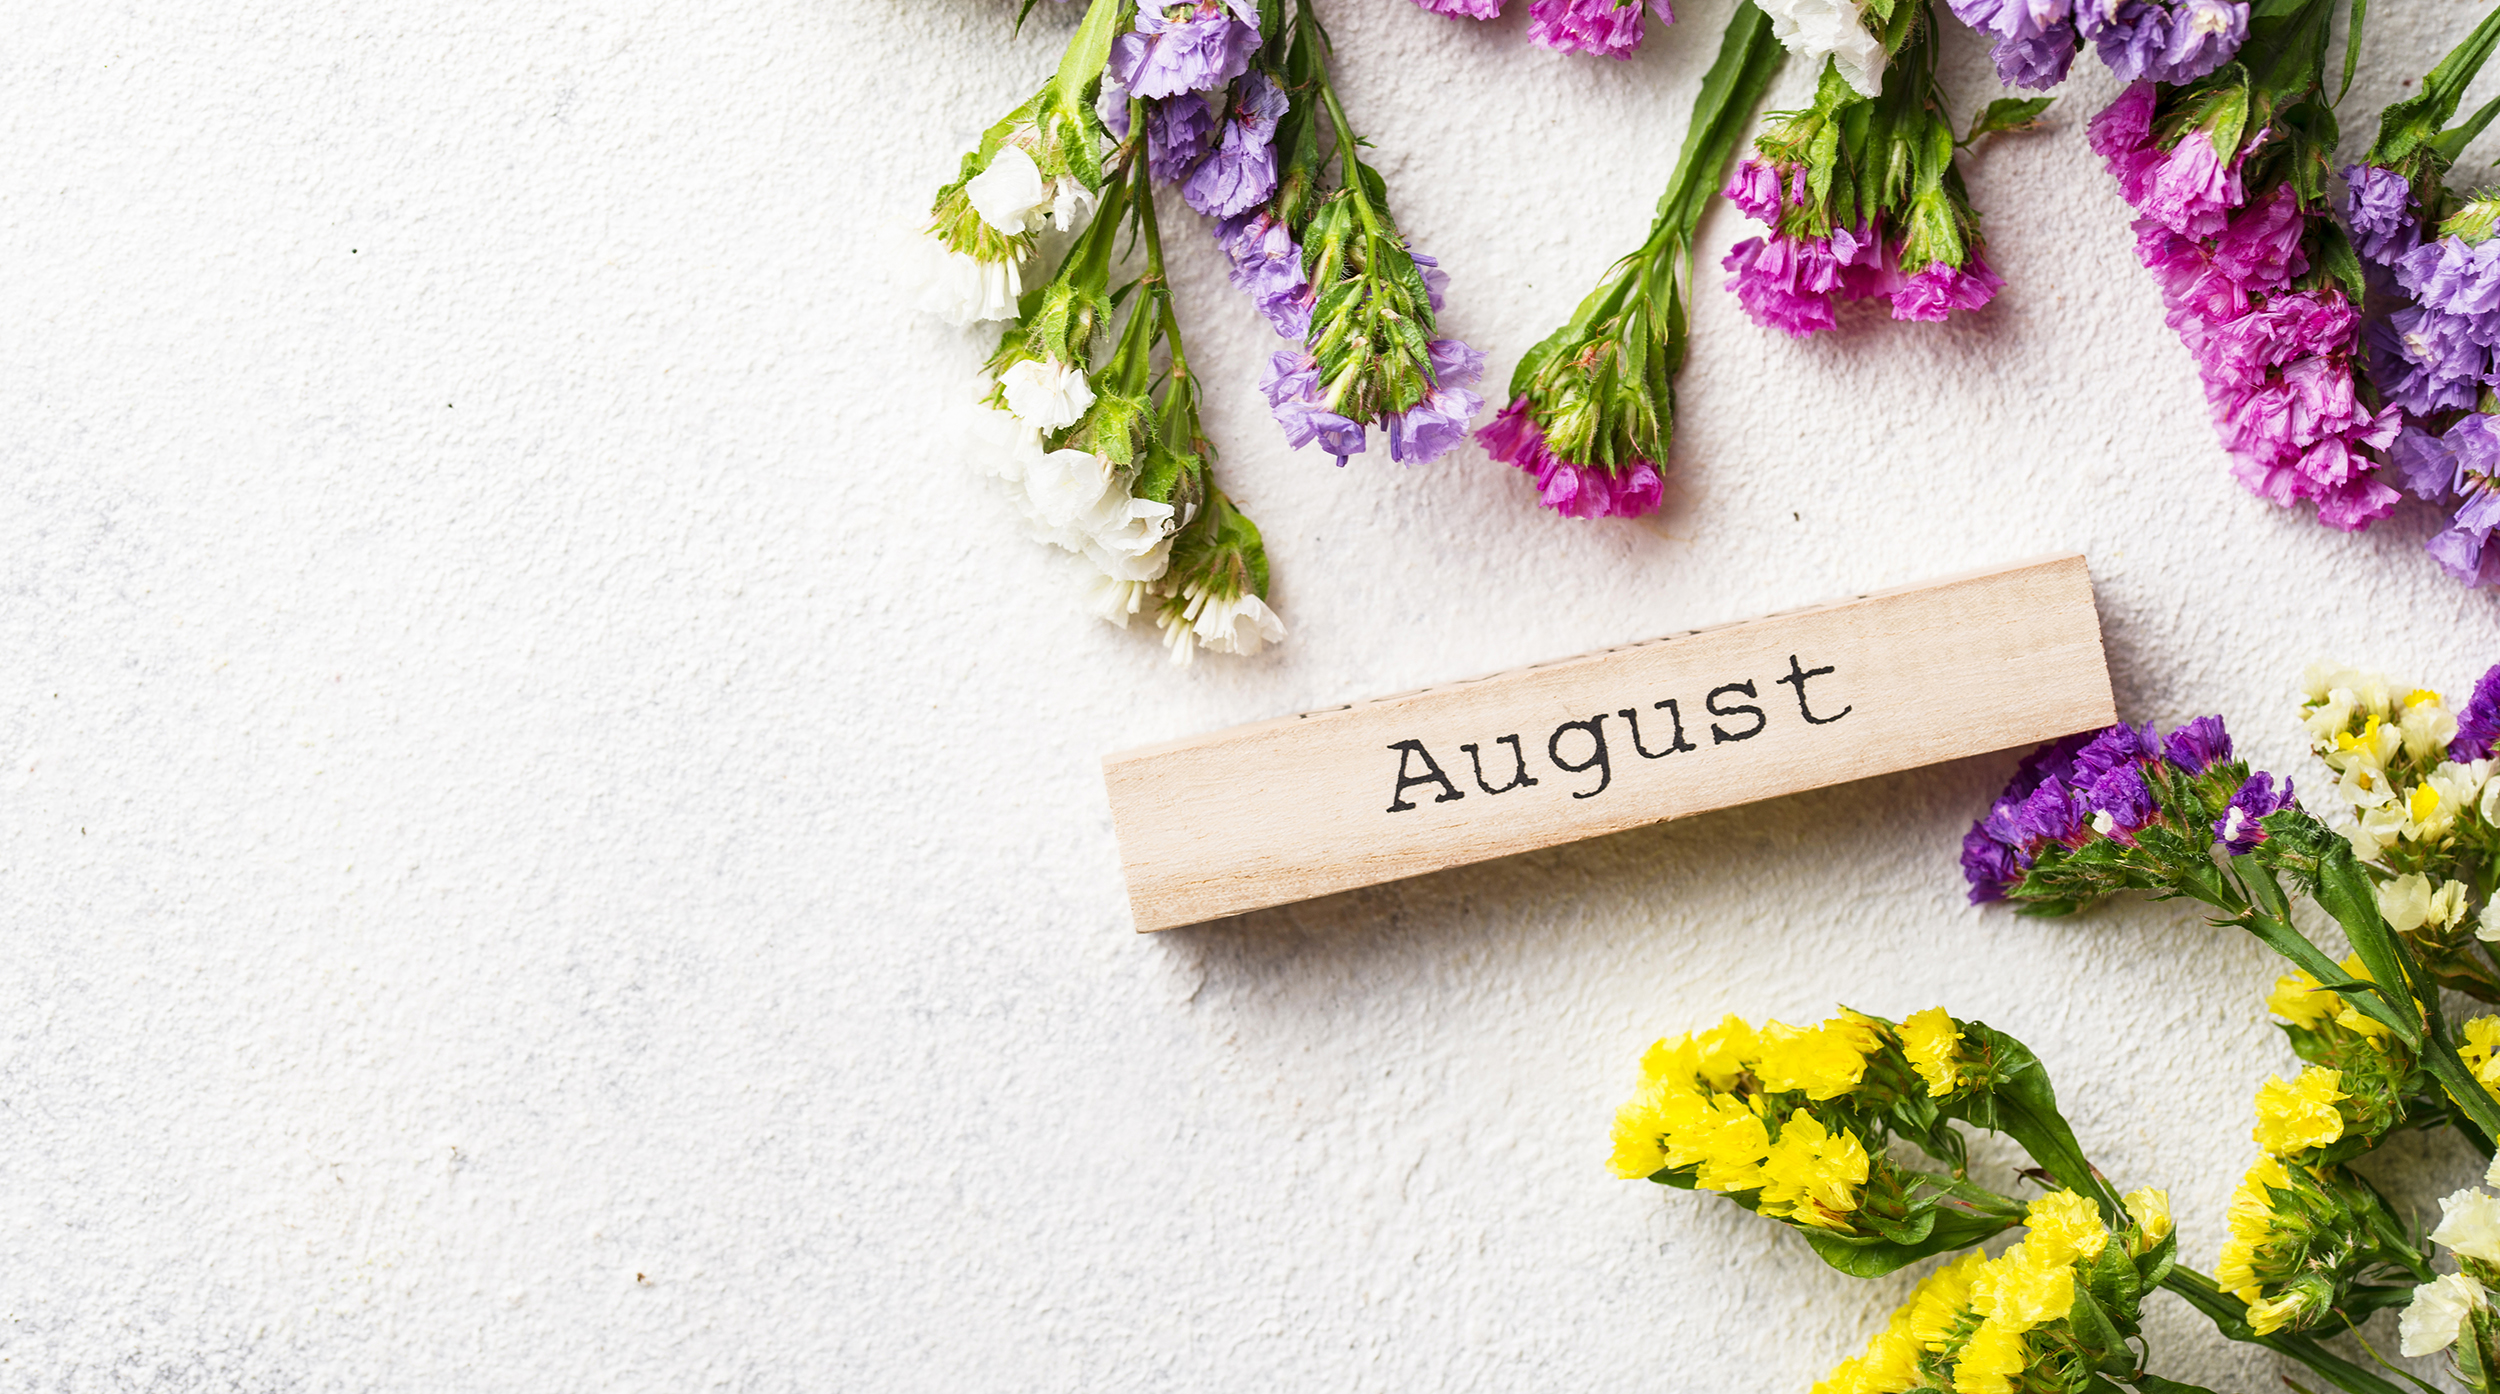 These are the social media events and holidays from the month of August.